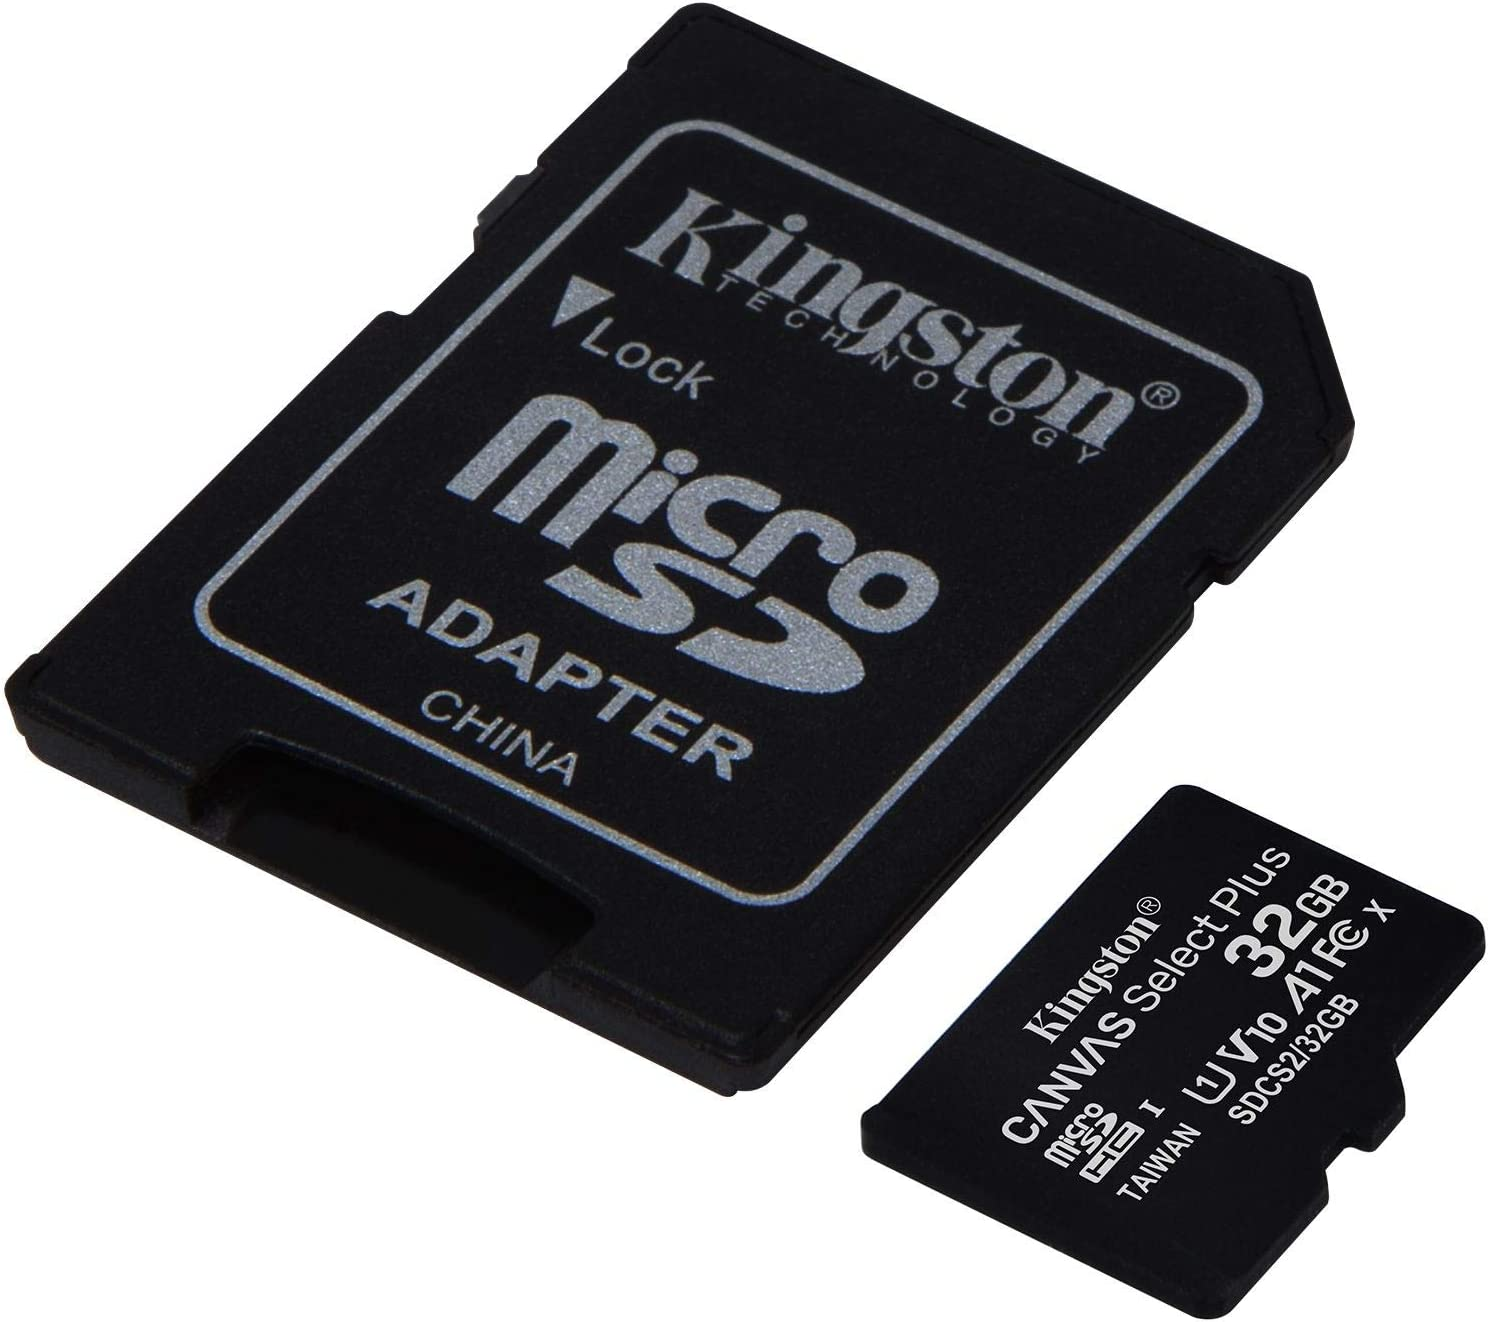 Kingston 32GB Lenovo A7000 MicroSDHC Canvas Select Plus Card Verified by SanFlash. (100MBs Works with Kingston)